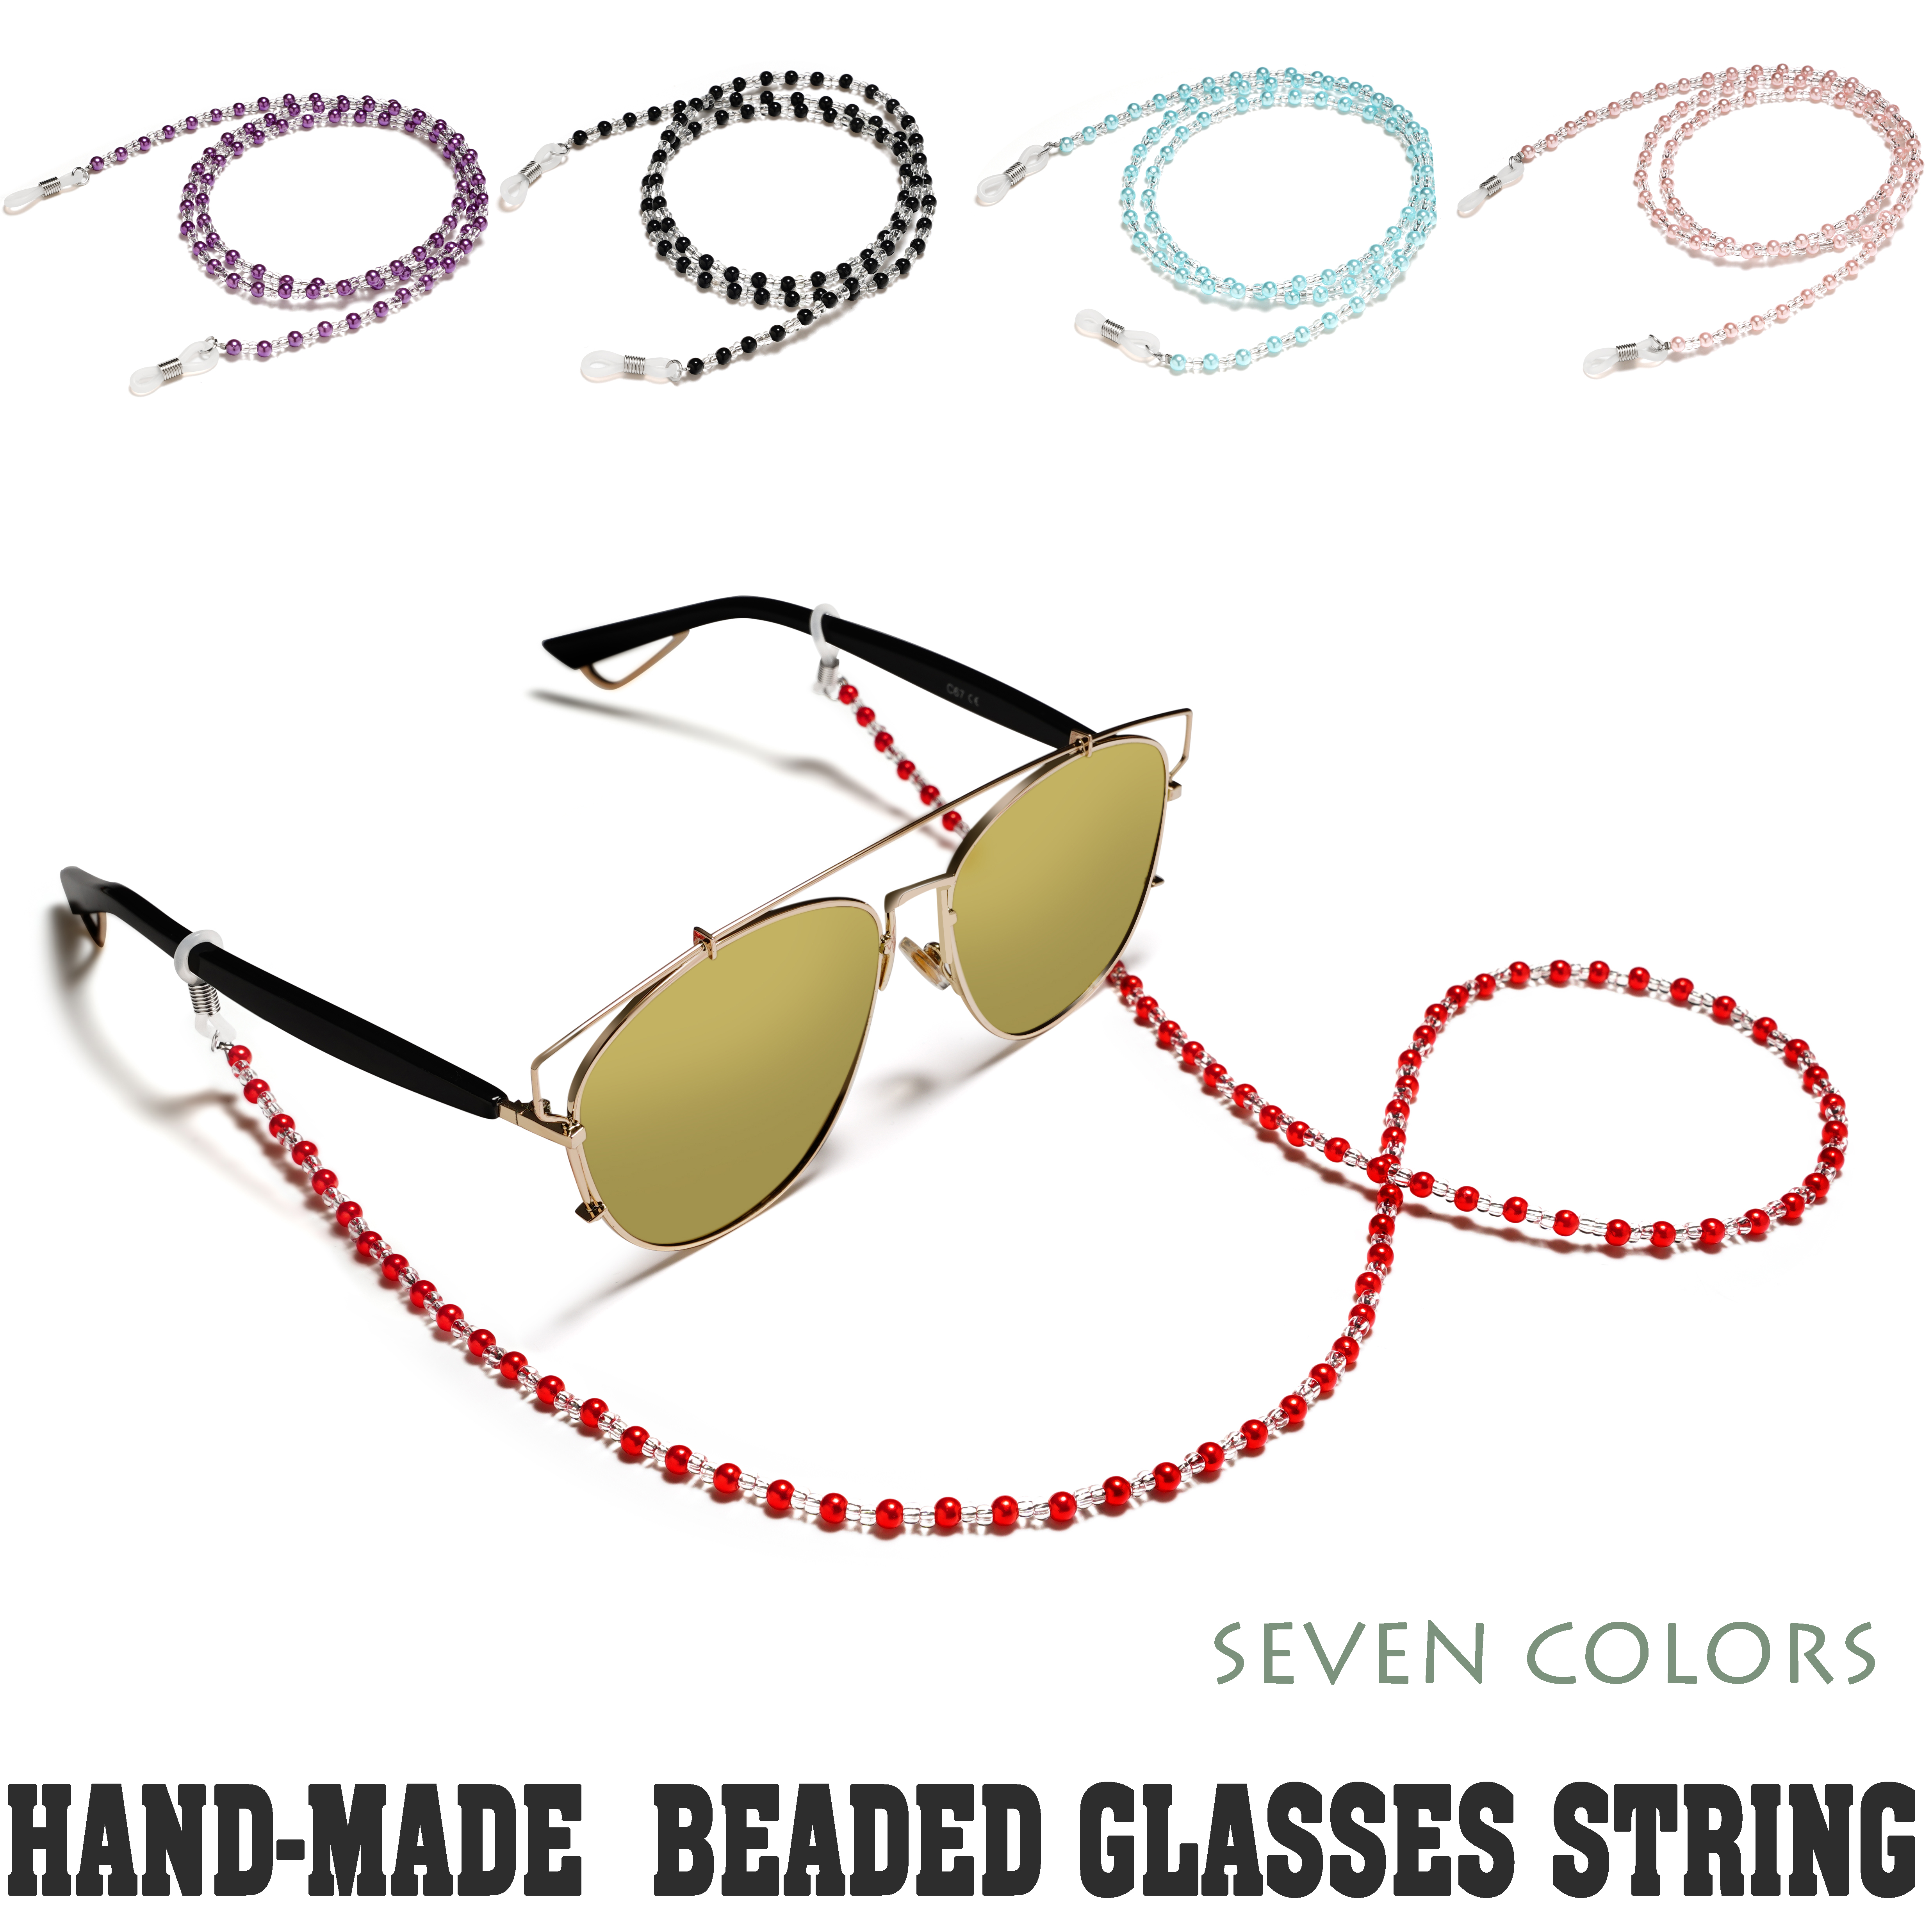 Acrylic Beaded Glasses Chain Simple Vintage Casual Eyeglass Anti-slid Holder Ajustable For All Eyeglasses 6 Colors Available